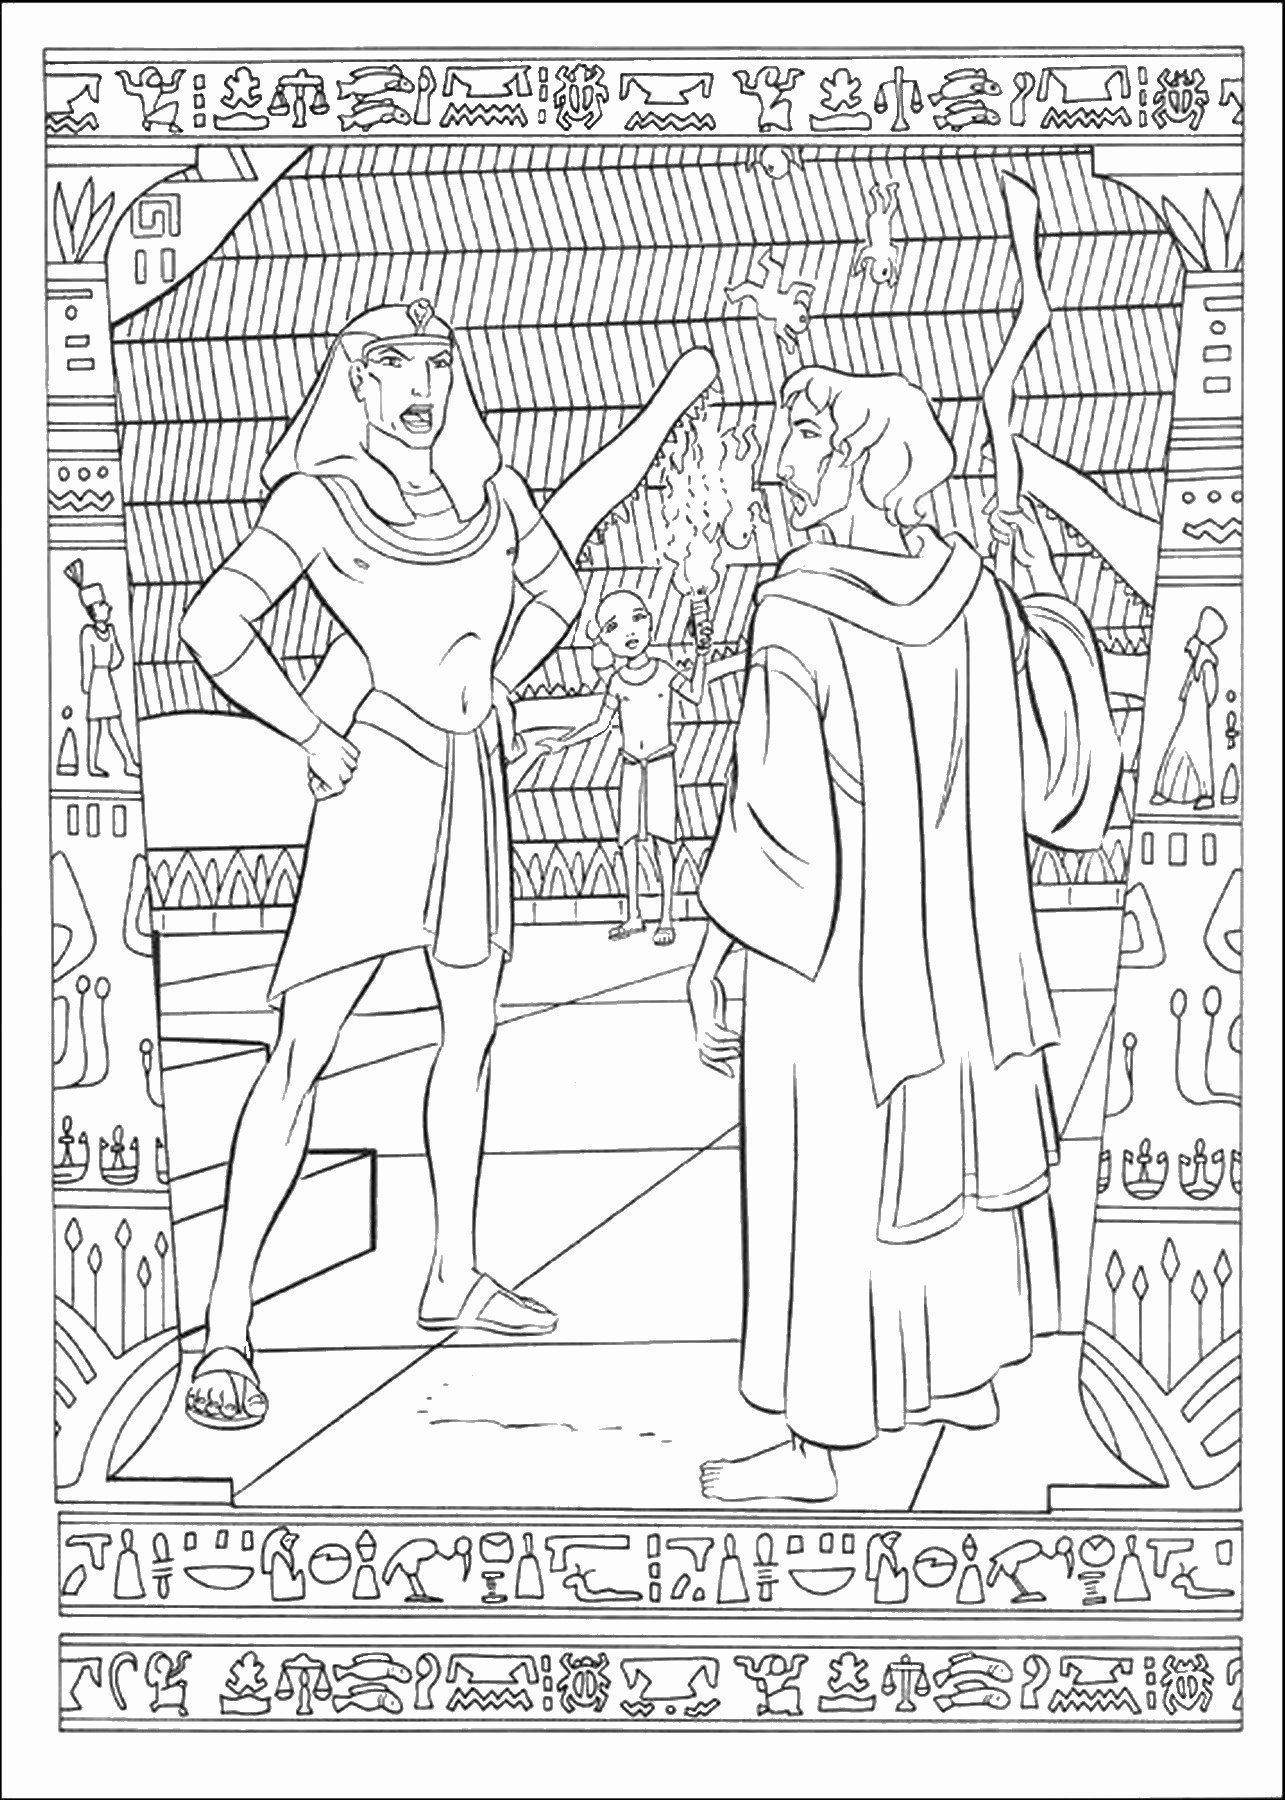 Prince Coloring Pages Printable Unique the Prince Of Egypt Coloring Pages in 2020 | Prince of ...